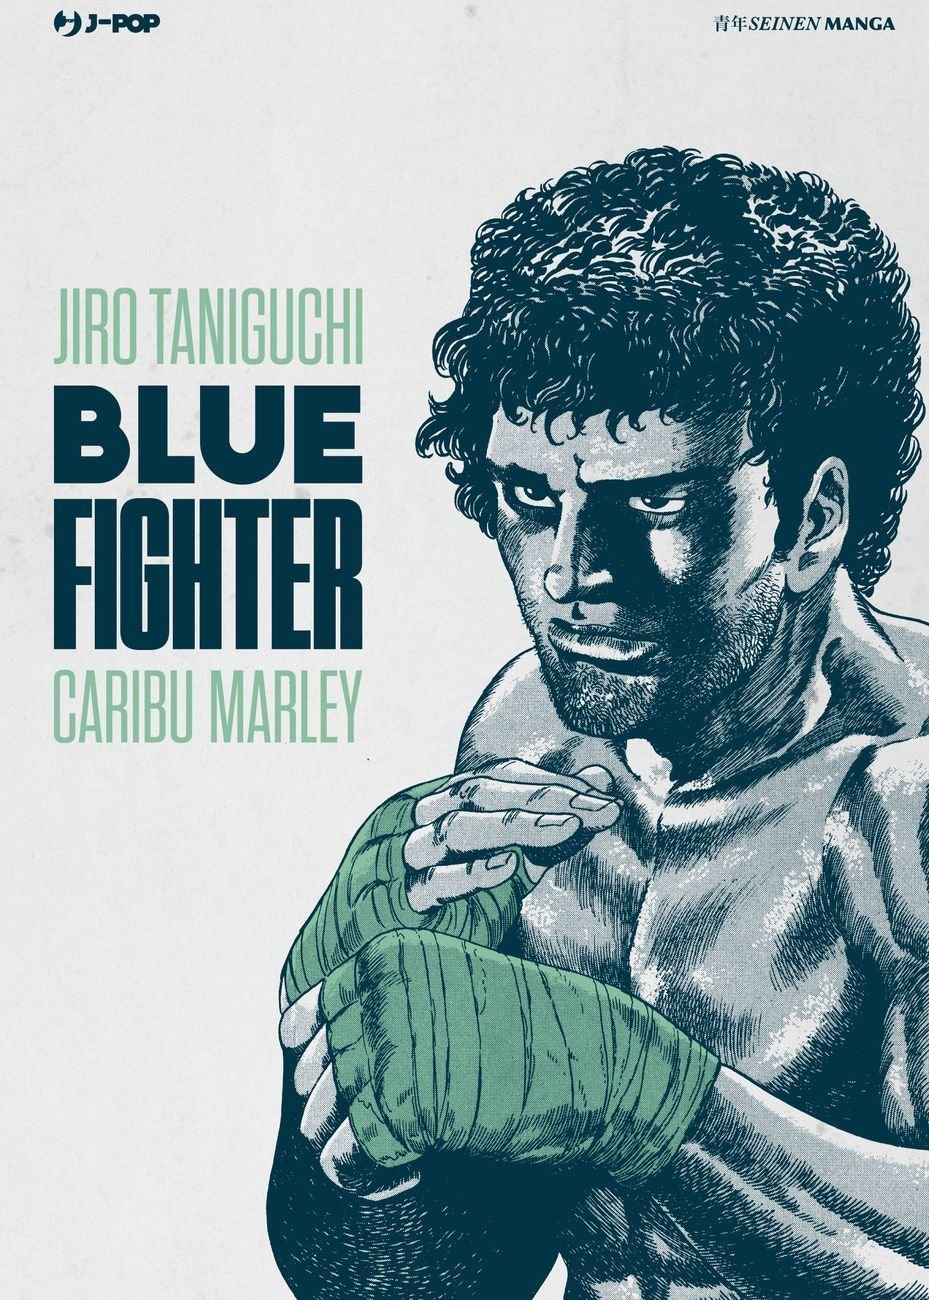 Jiro Taniguchi - Blue Fighter J POP Manga Milano 2018  Copertina